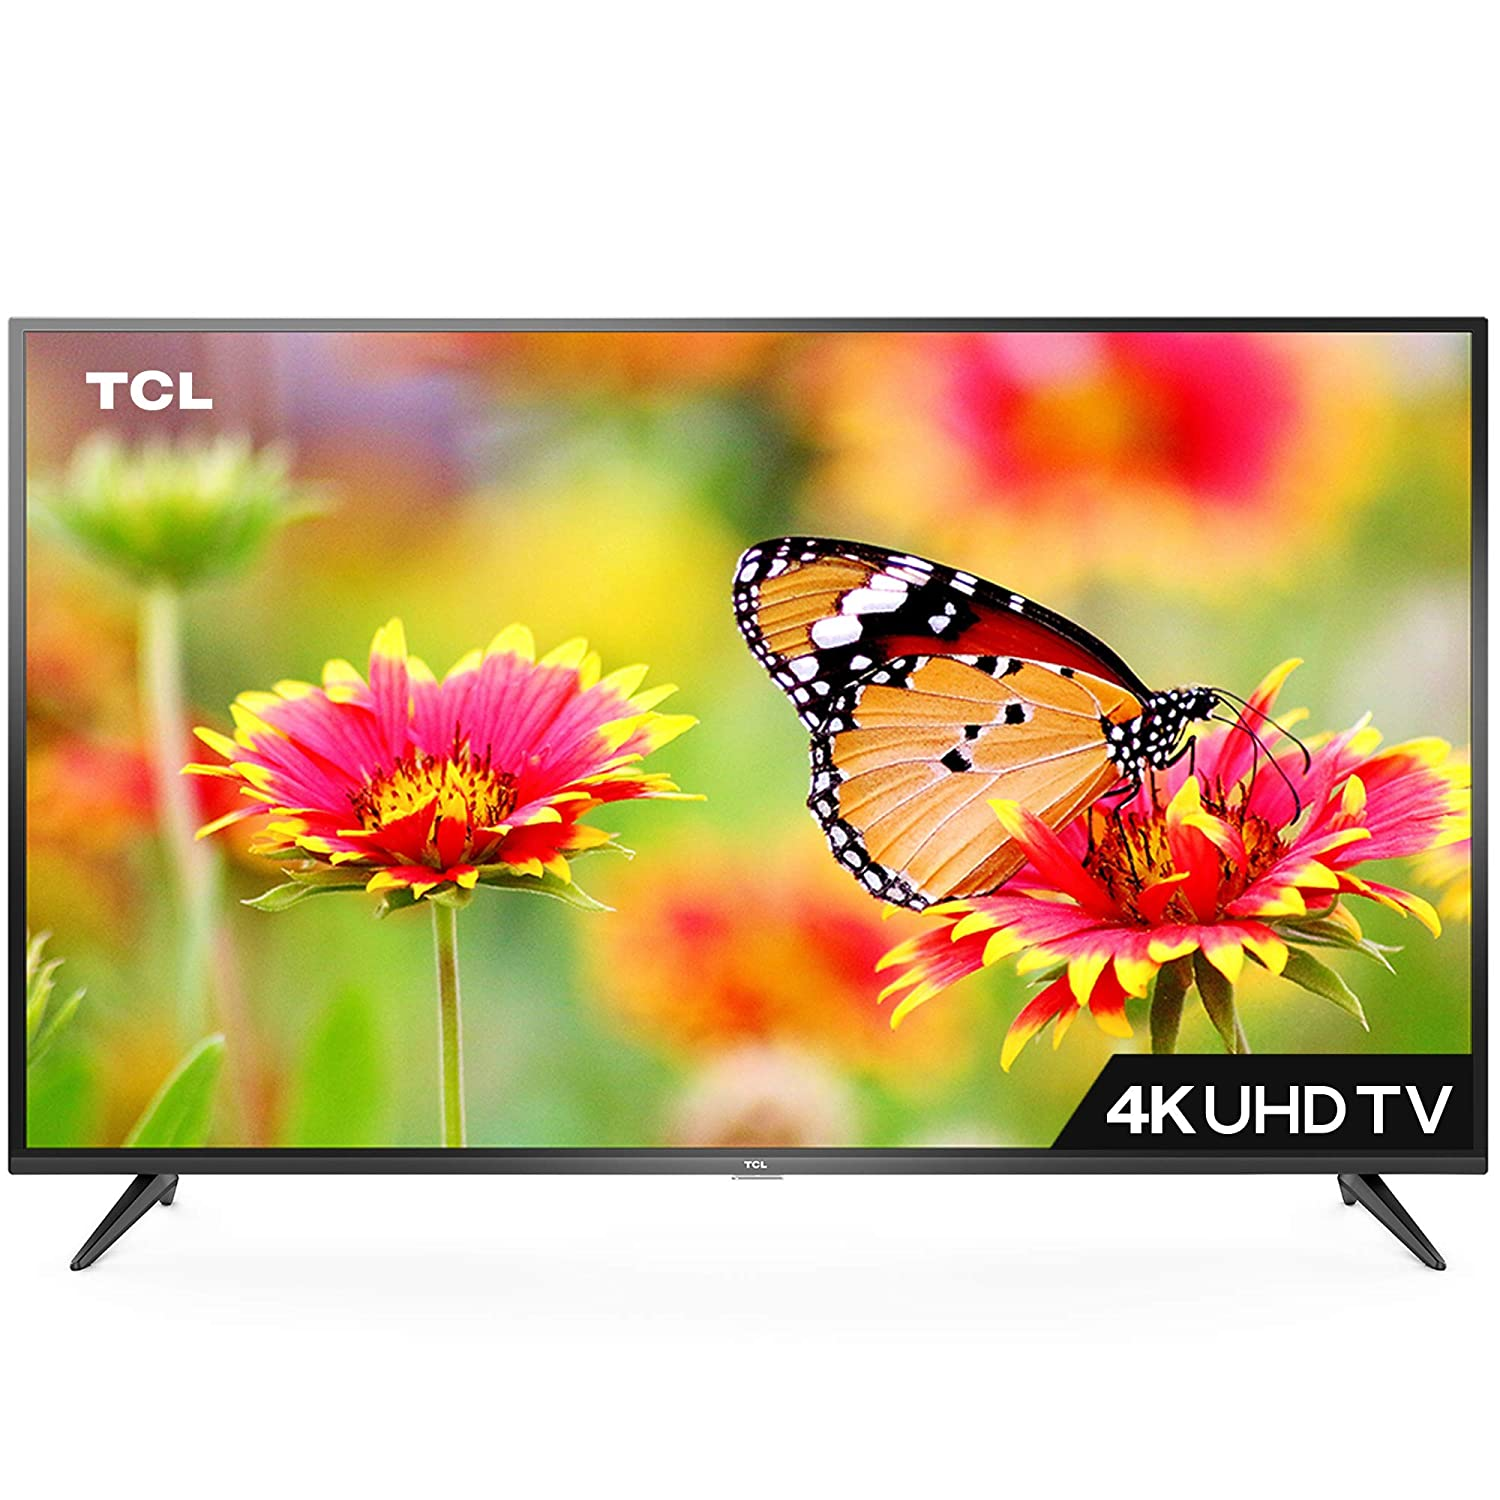 Tcl 107 88 Cm 4k Uhd Smart Led Tv 43p65us Amazon In Electronics